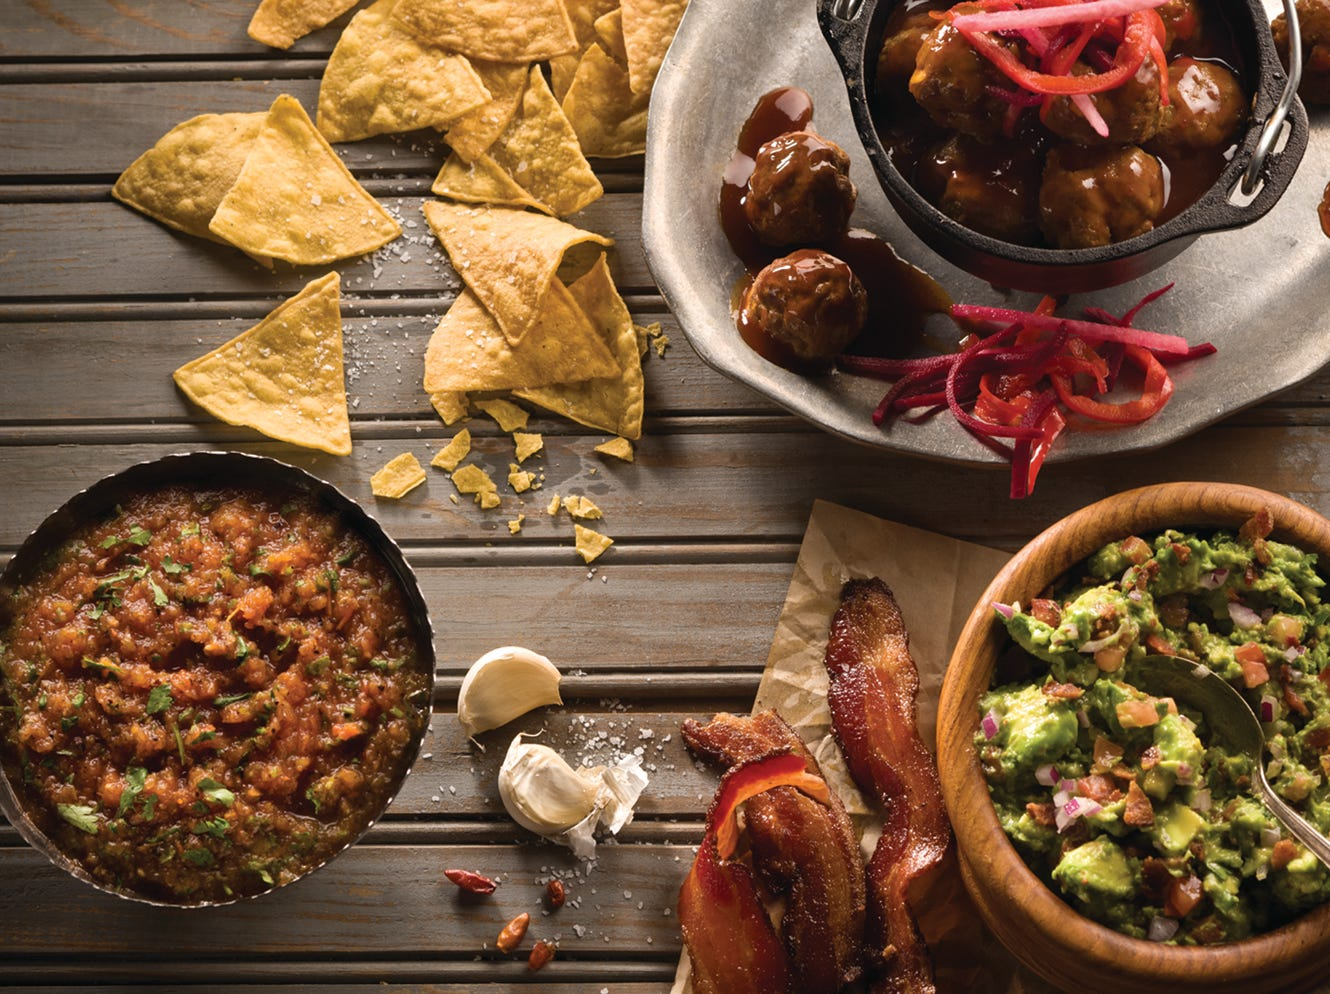 Taco Guild | Nov. 11-12, dine in and geta $25 gift card toward a future meal. ThroughNovember, all guests who bring in new items for care packages can redeem a card for afree appetizer on a return visit. | Details:546 E. Osborn Road, Phoenix.602-264-4143,tacoguild.com.